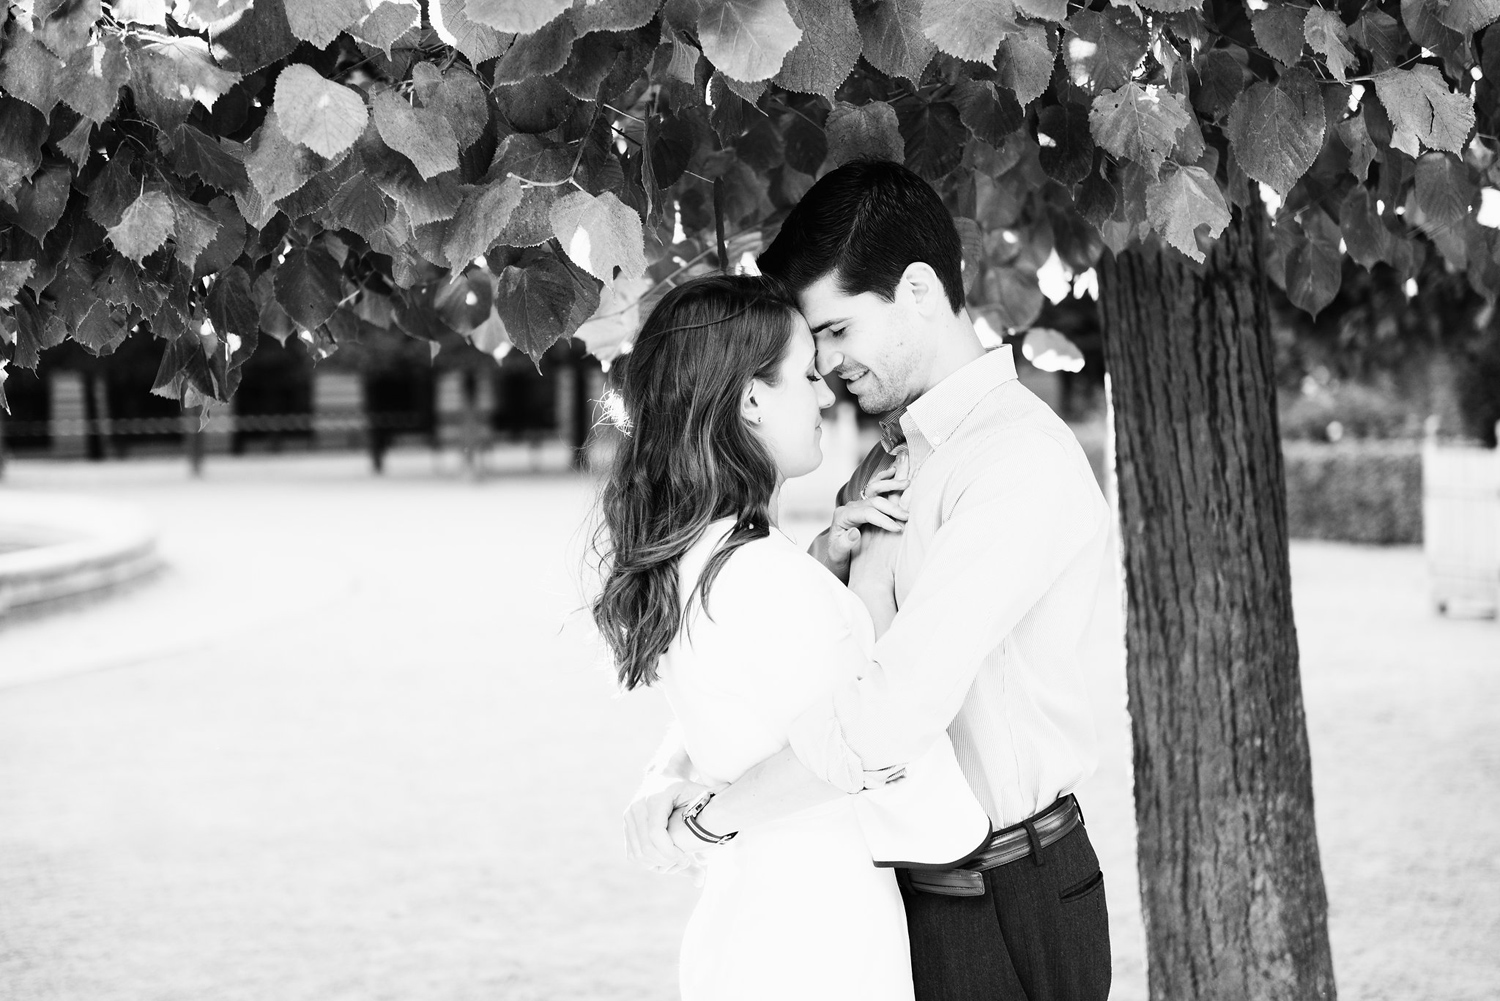 012-katie-mitchell-paris-engagement-photographer-france.jpg